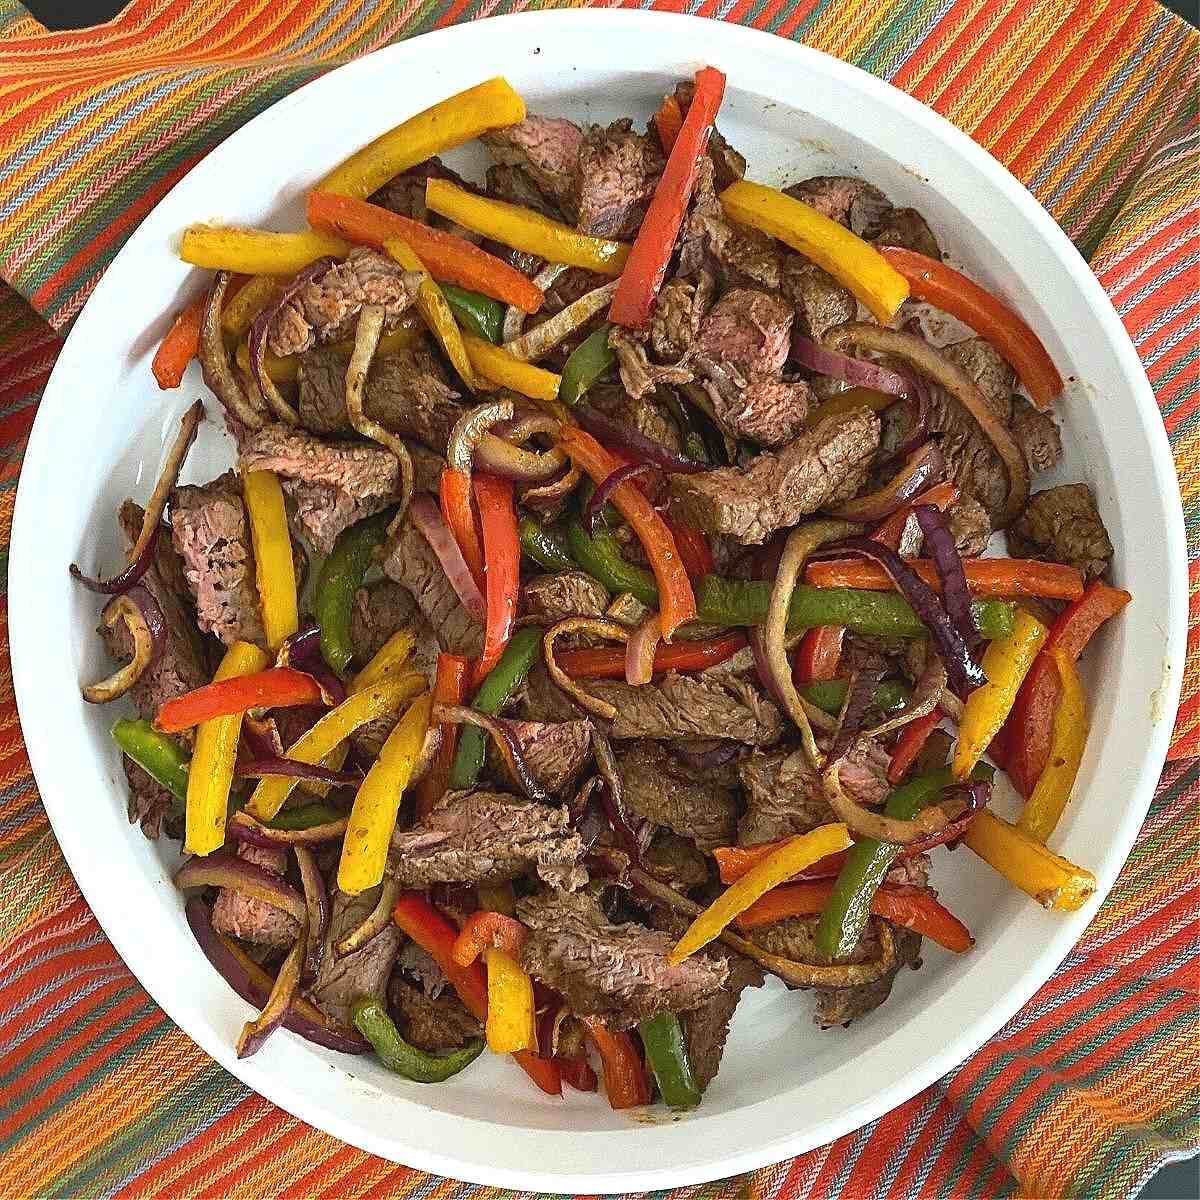 Air fryer steak fajitas with bell peppers and onions in a serving dish.